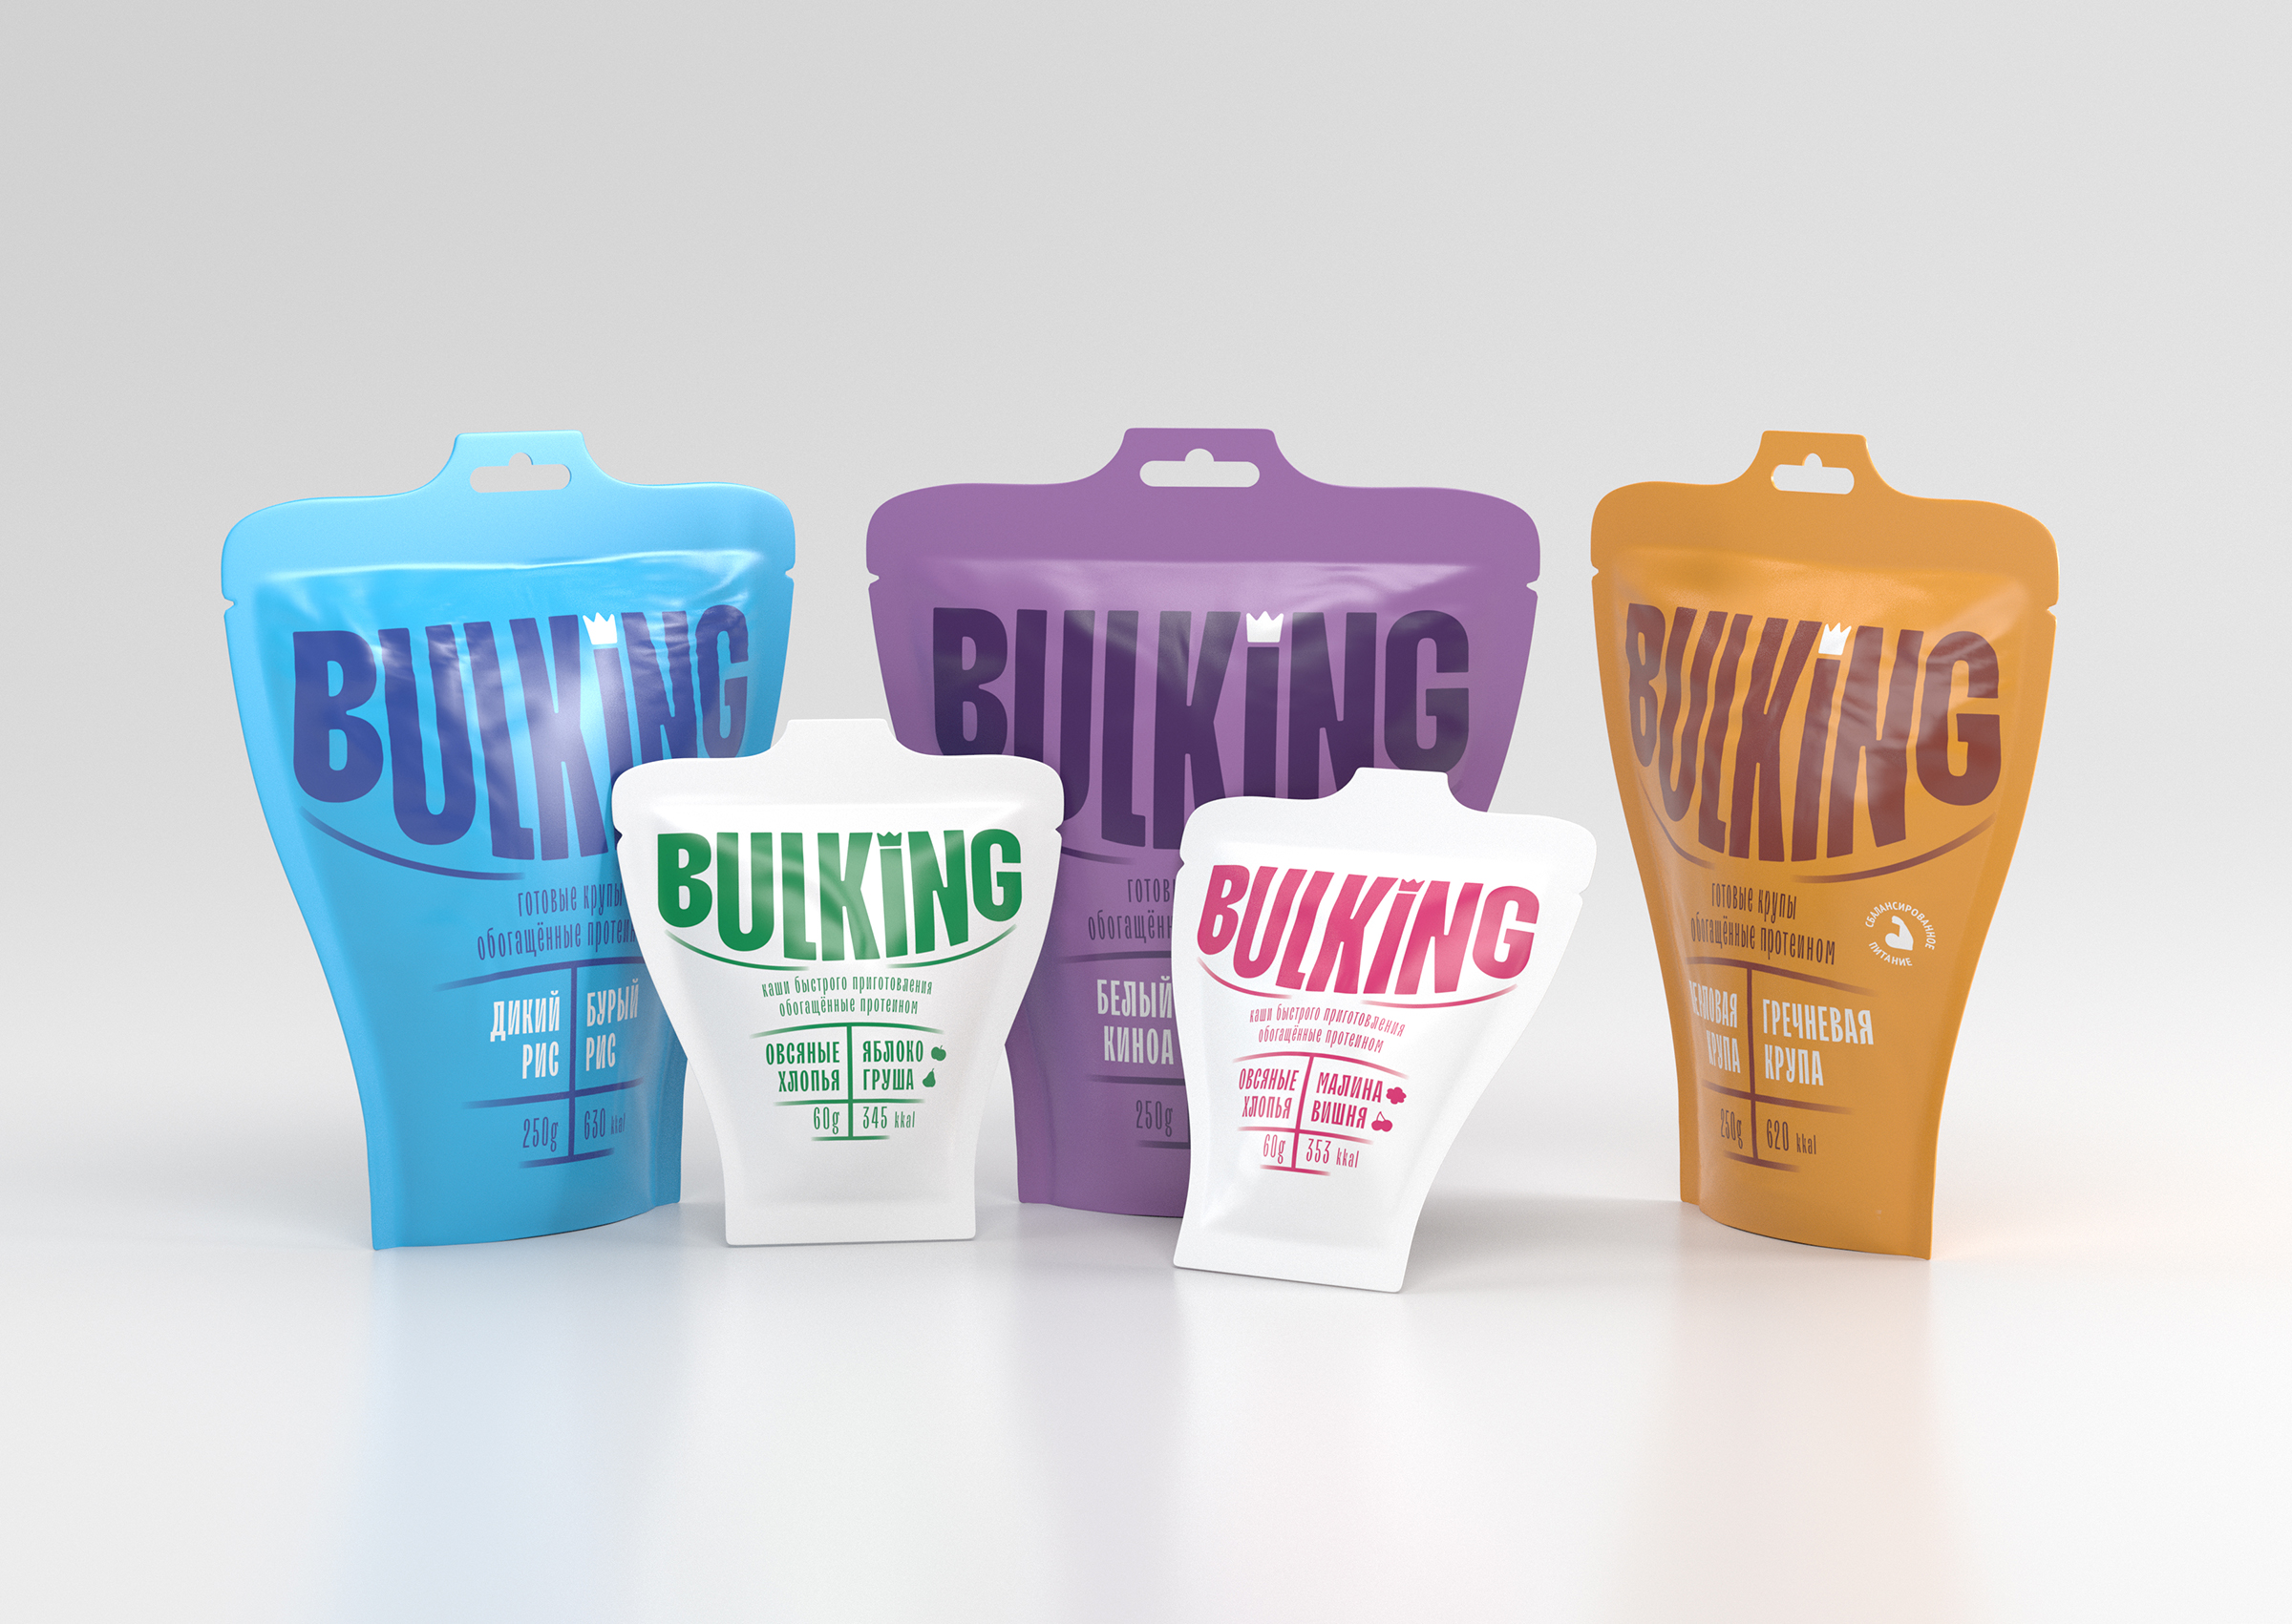 Bulking Ready-Made Groats with Protein Packaging Design Concept Created by Nikita Gavrilov